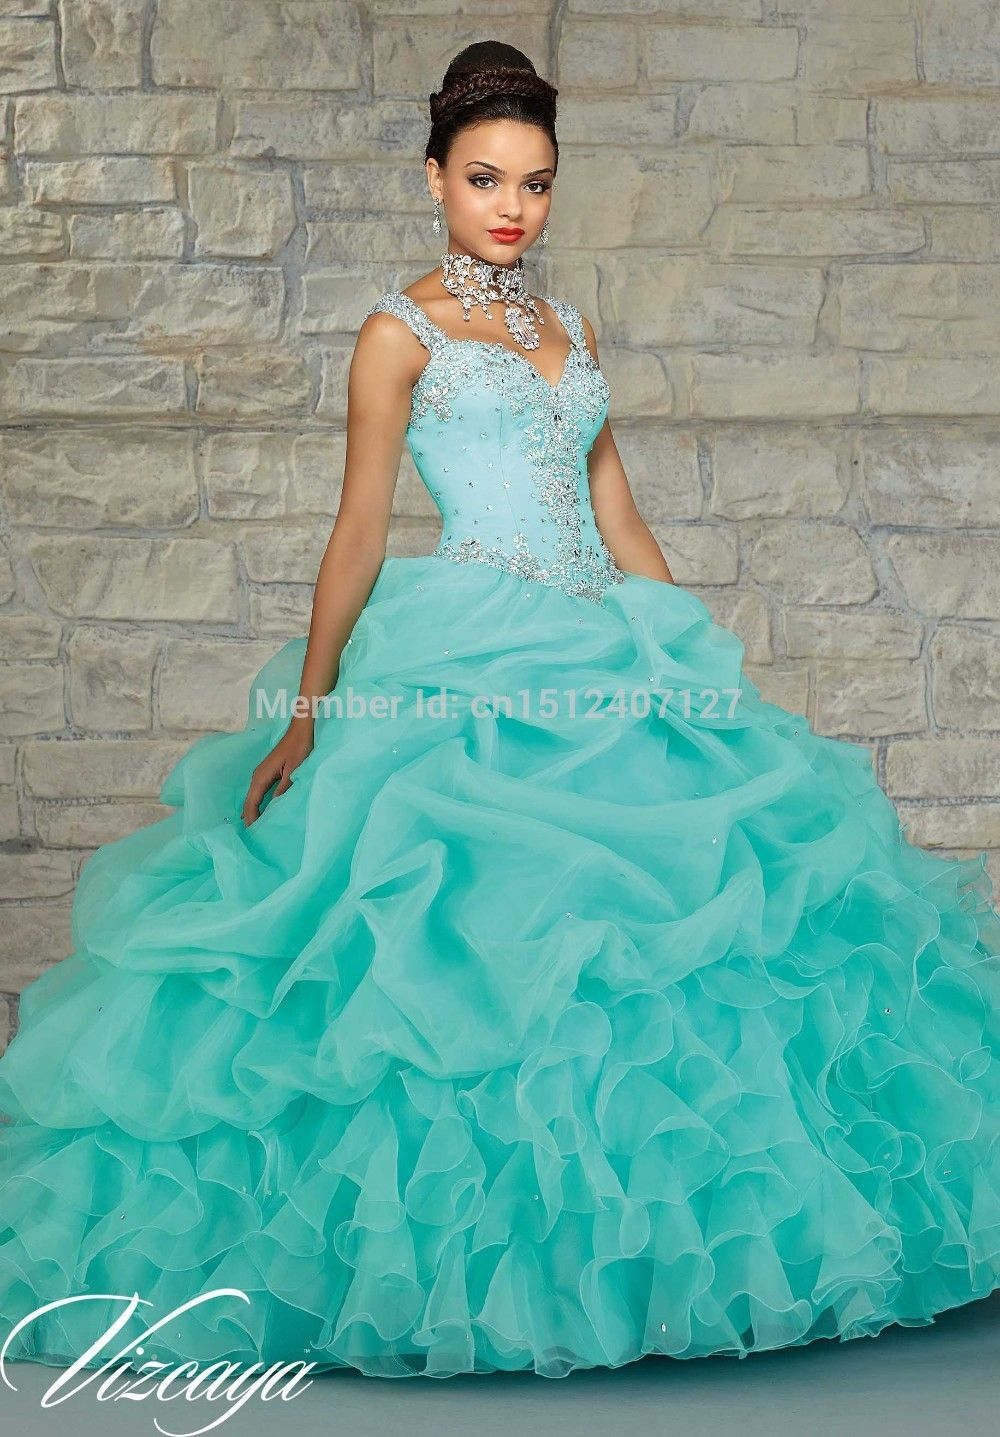 quinceanera dresses turquoise - Google Search | Quinceañera ...